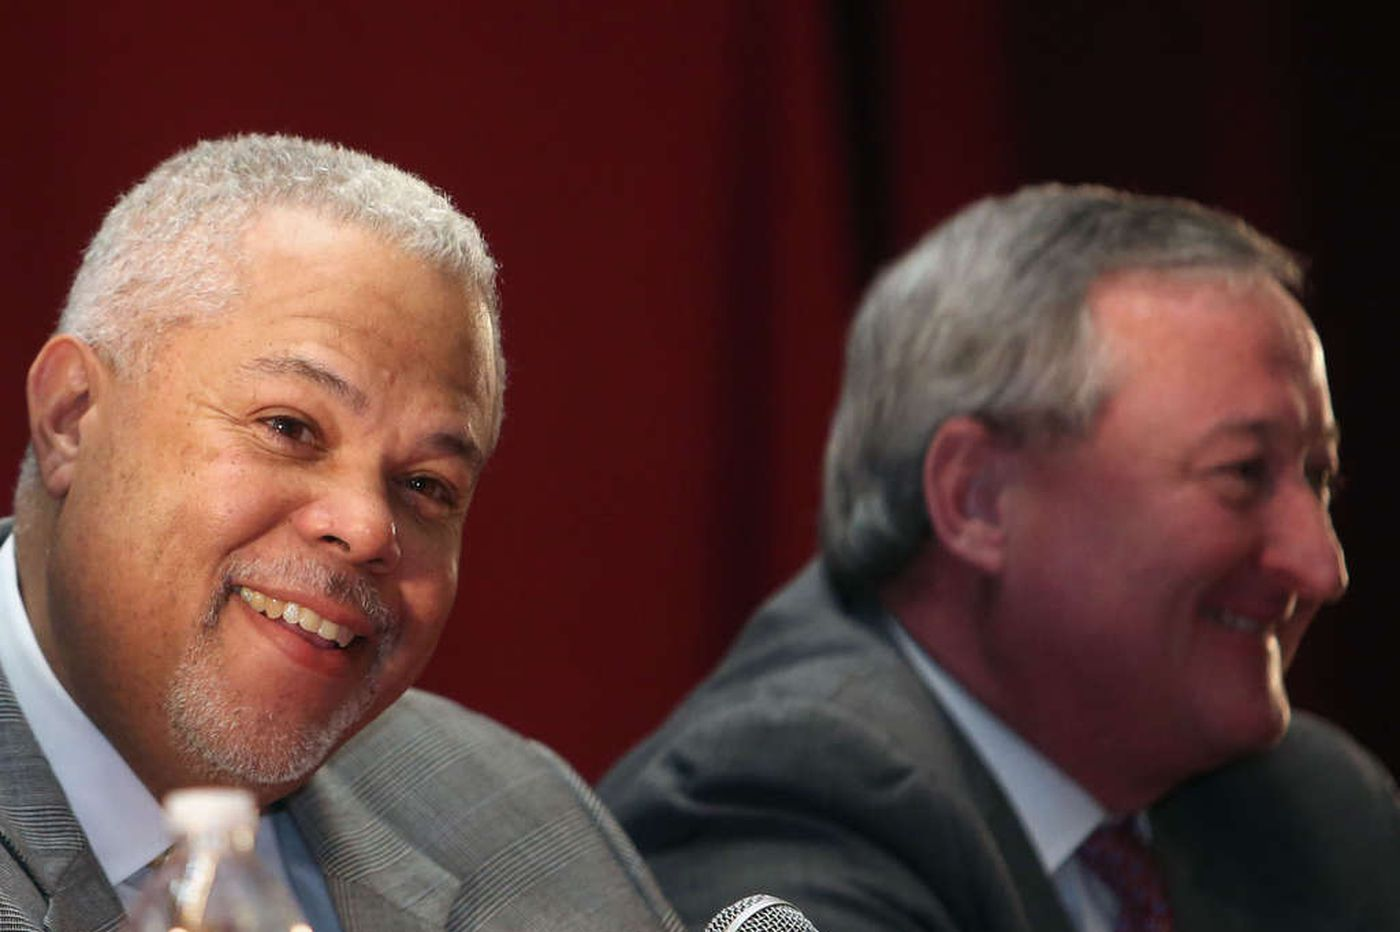 Anthony Williams moves closer to challenging Jim Kenney, using Local 98 ties to taint the Philly mayor | Clout